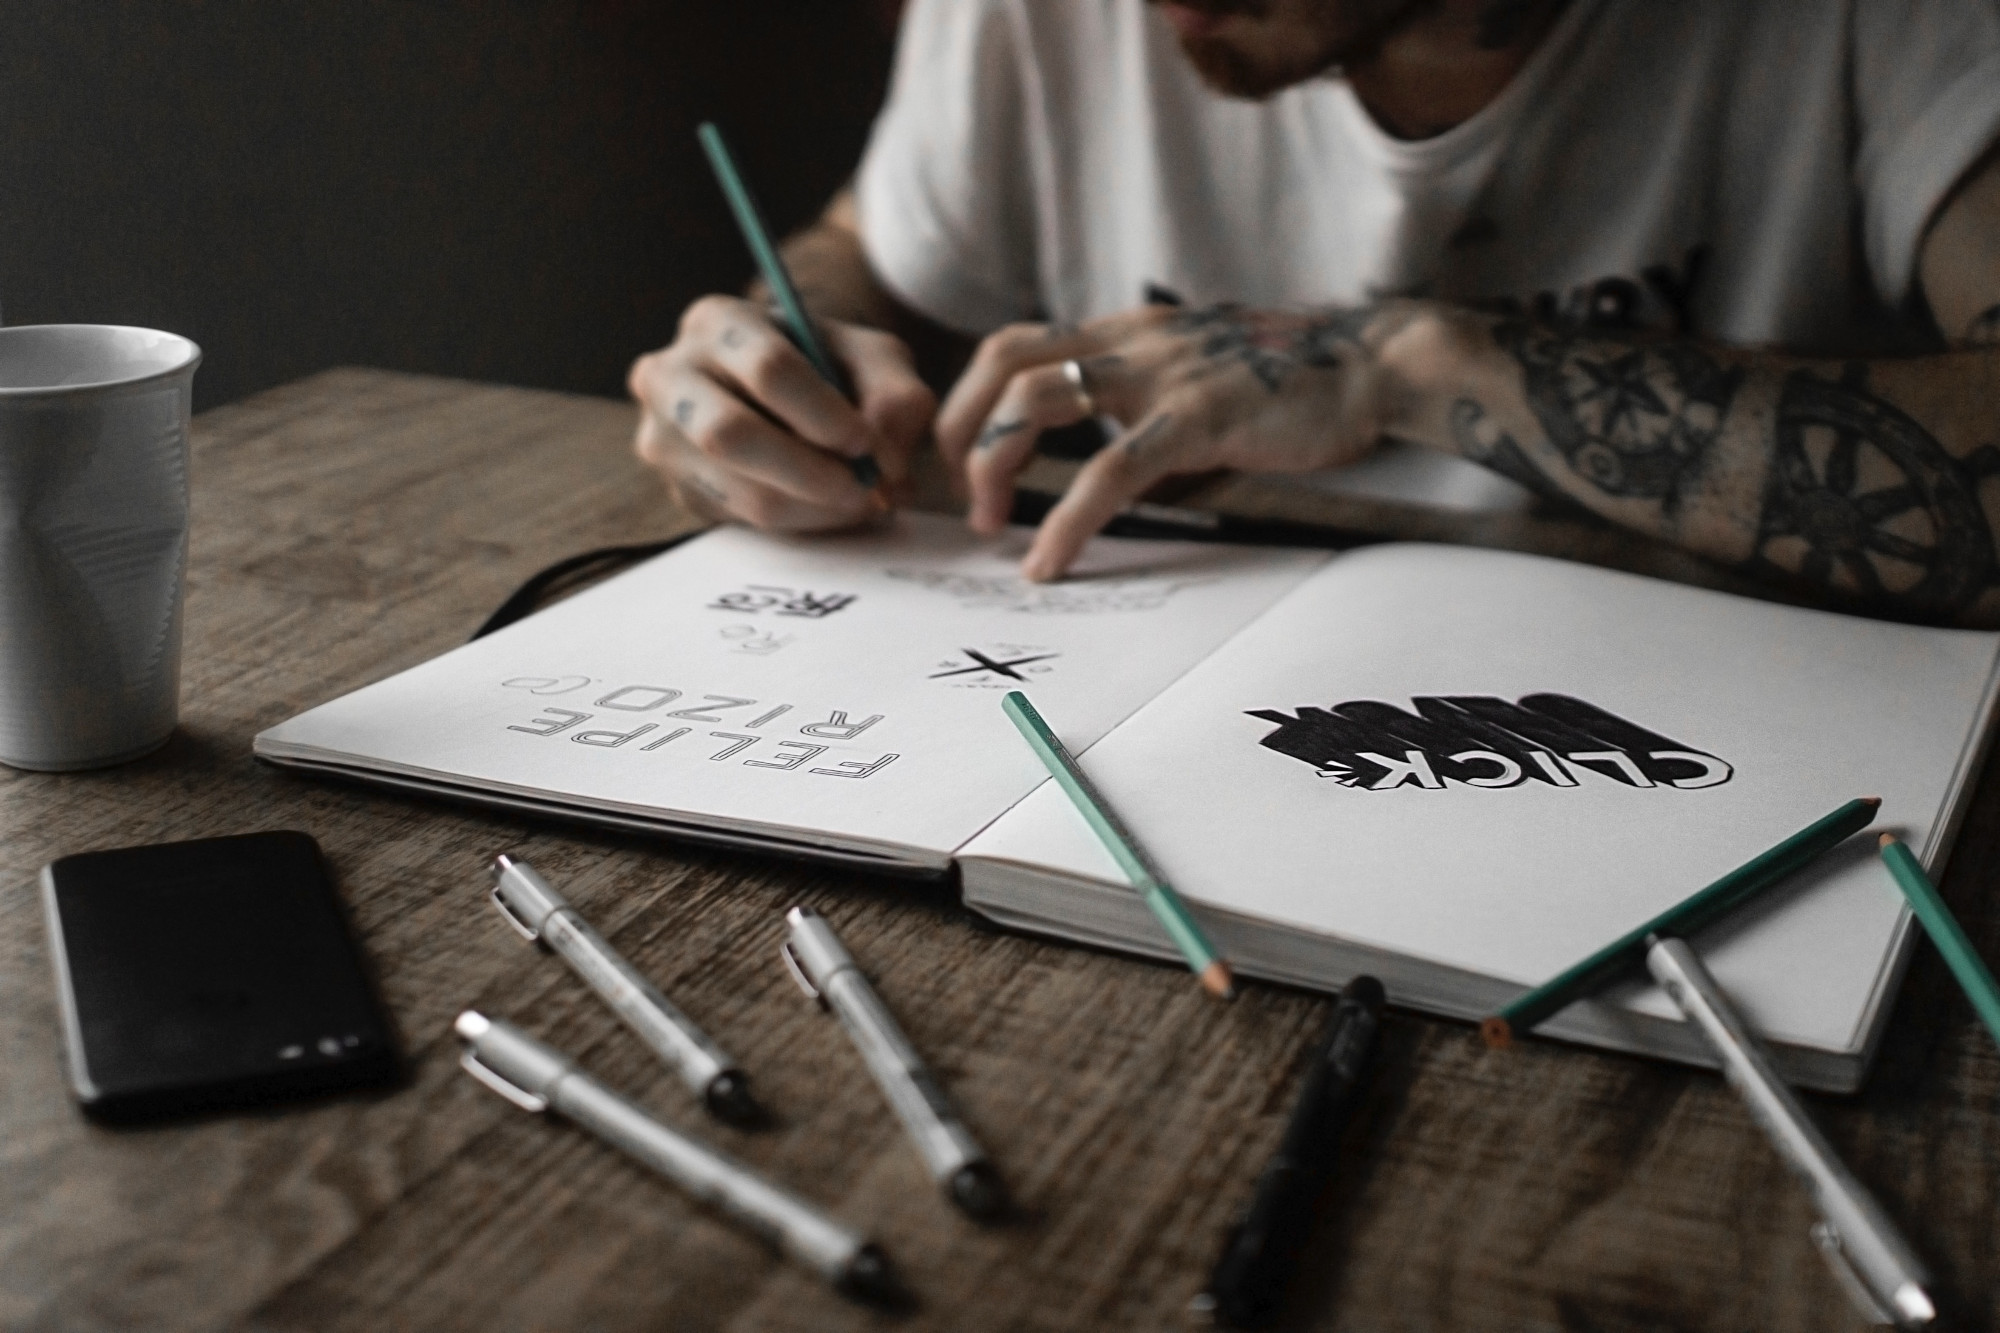 Designer in sketchbook creating typography